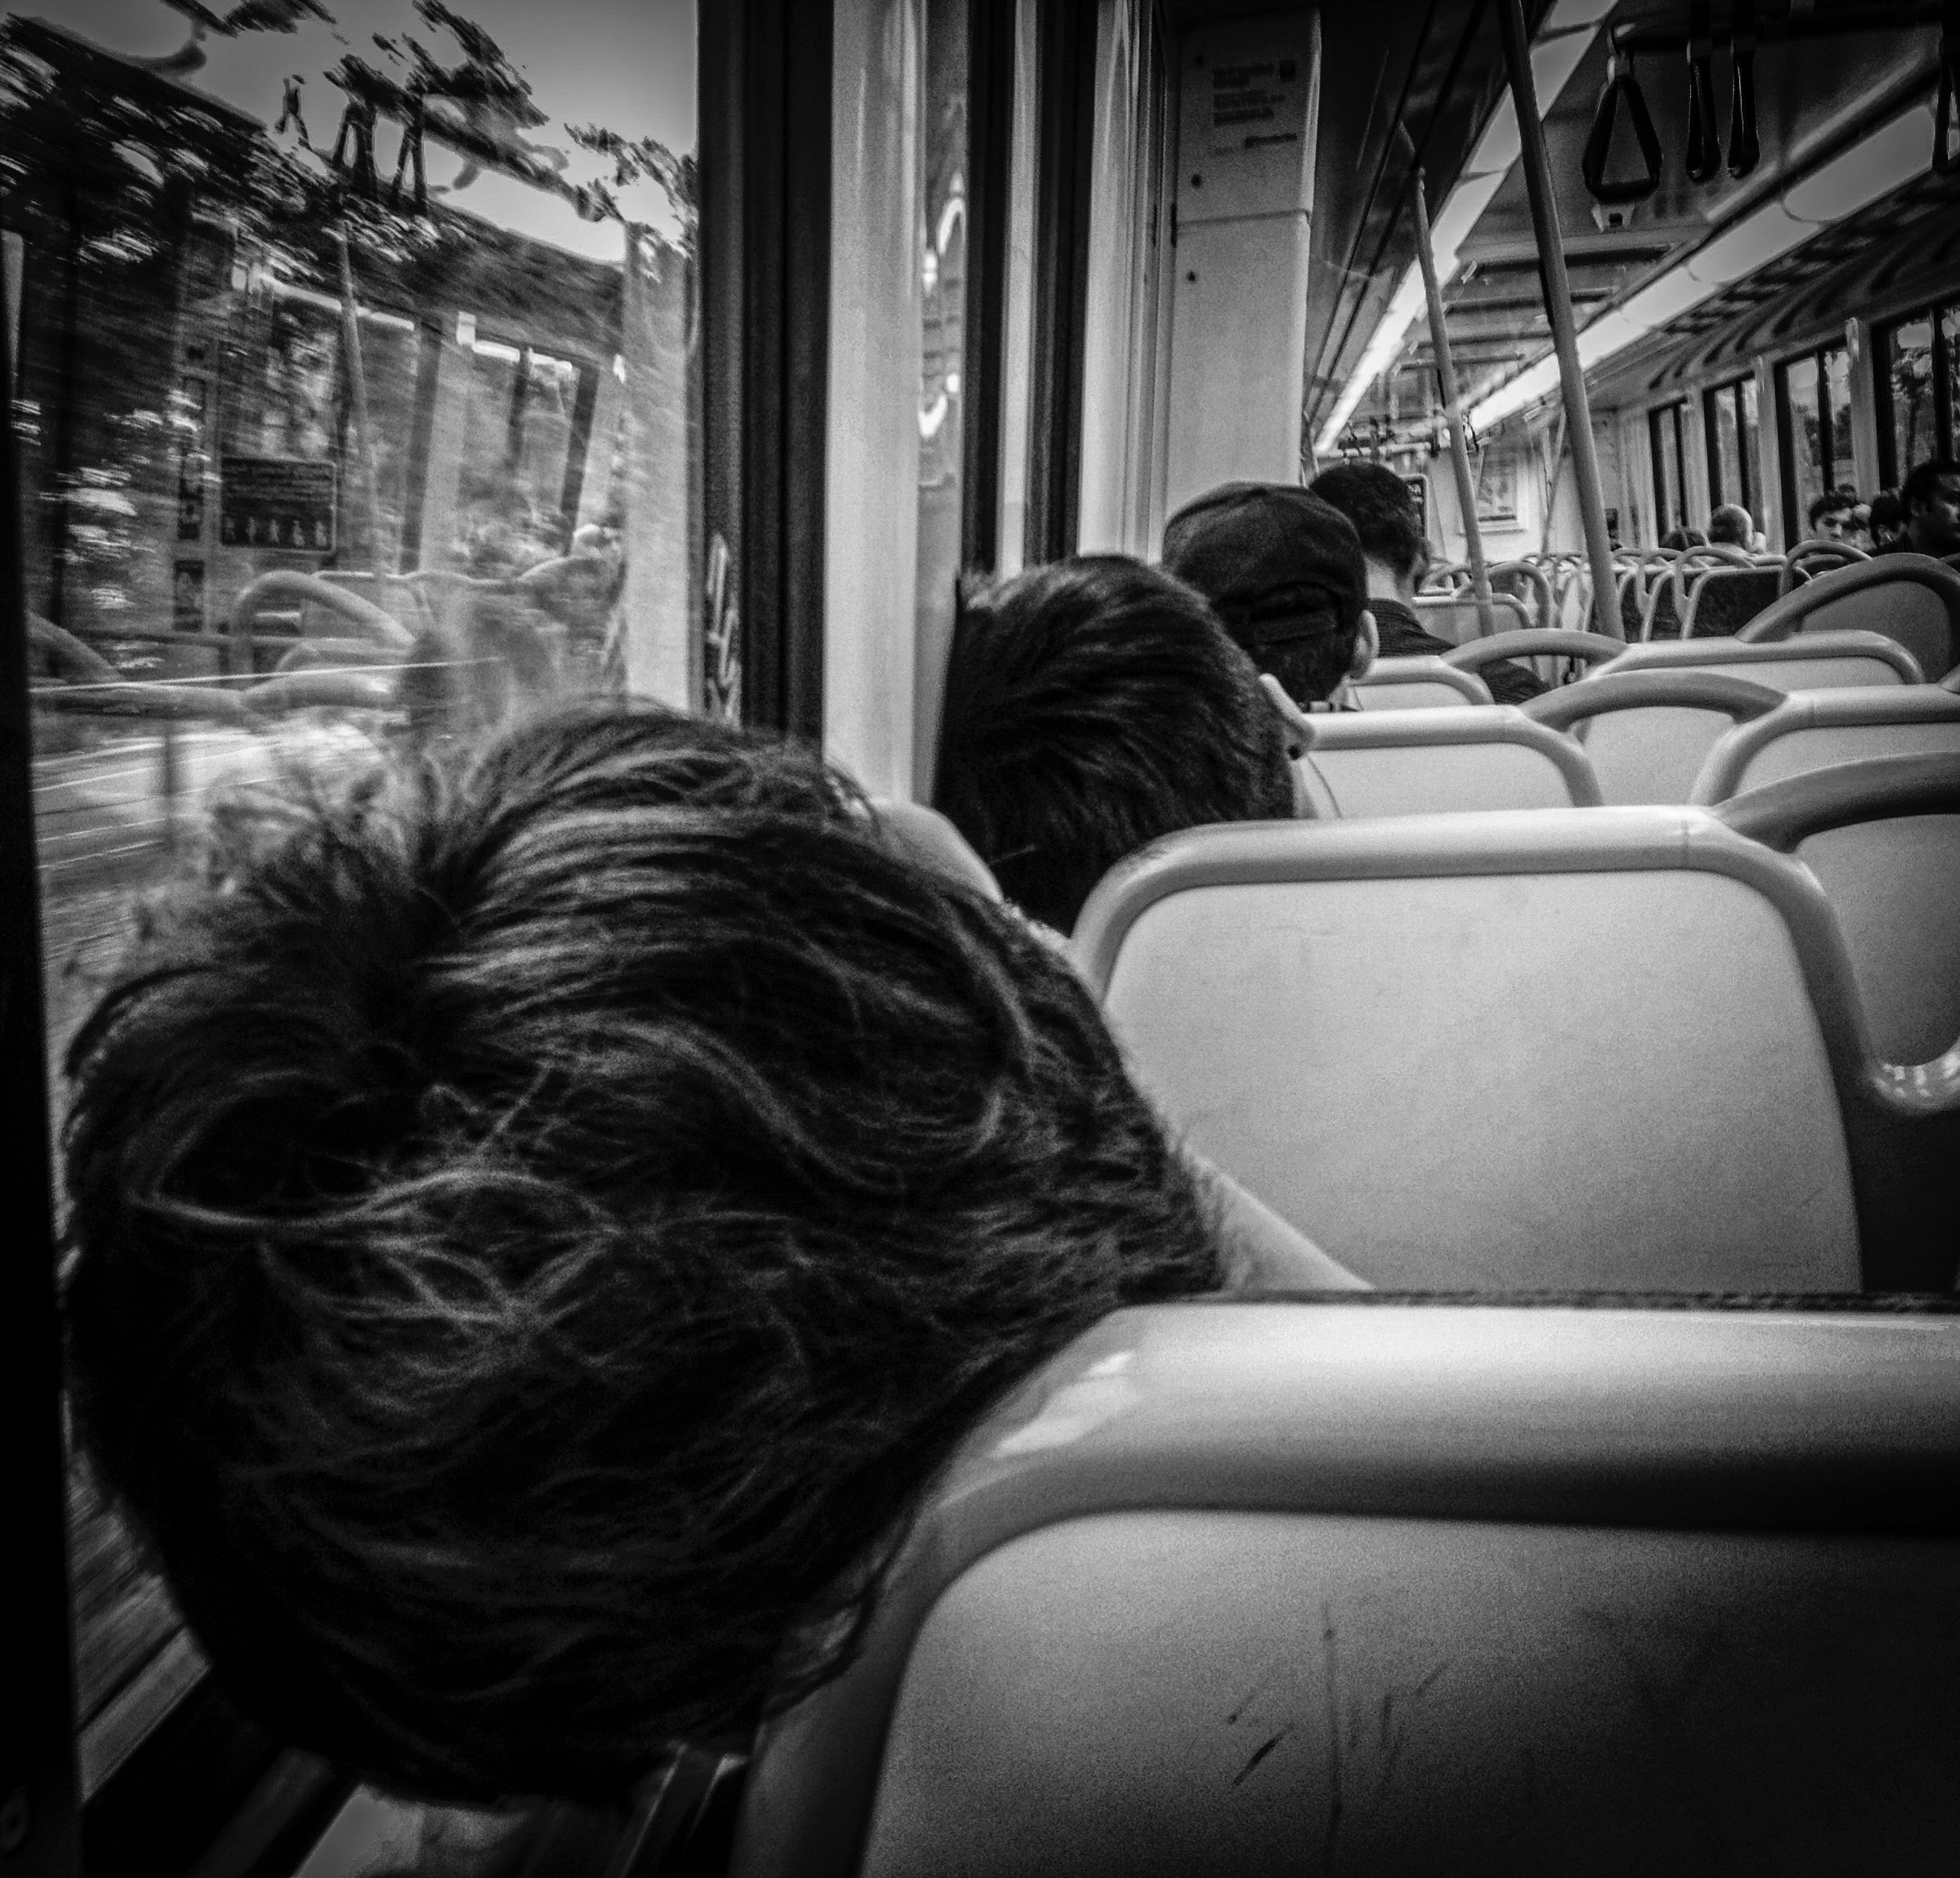 The Commute                                                                                                                              © Russell Shakespeare 2019